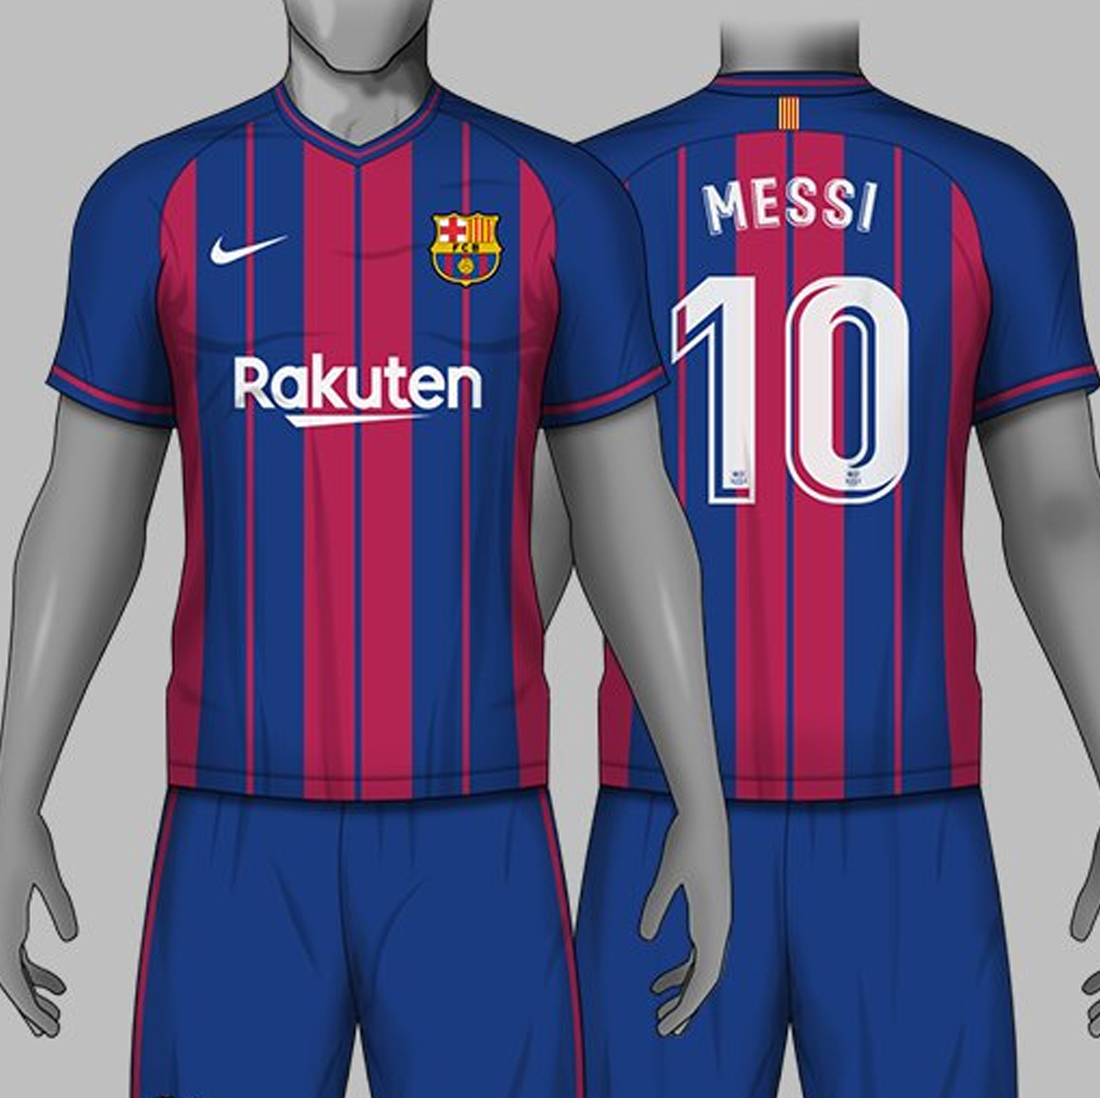 286ba974abb 3 Amazing Nike FC Barcelona Home Kit Concepts By Carrino - Footy ...